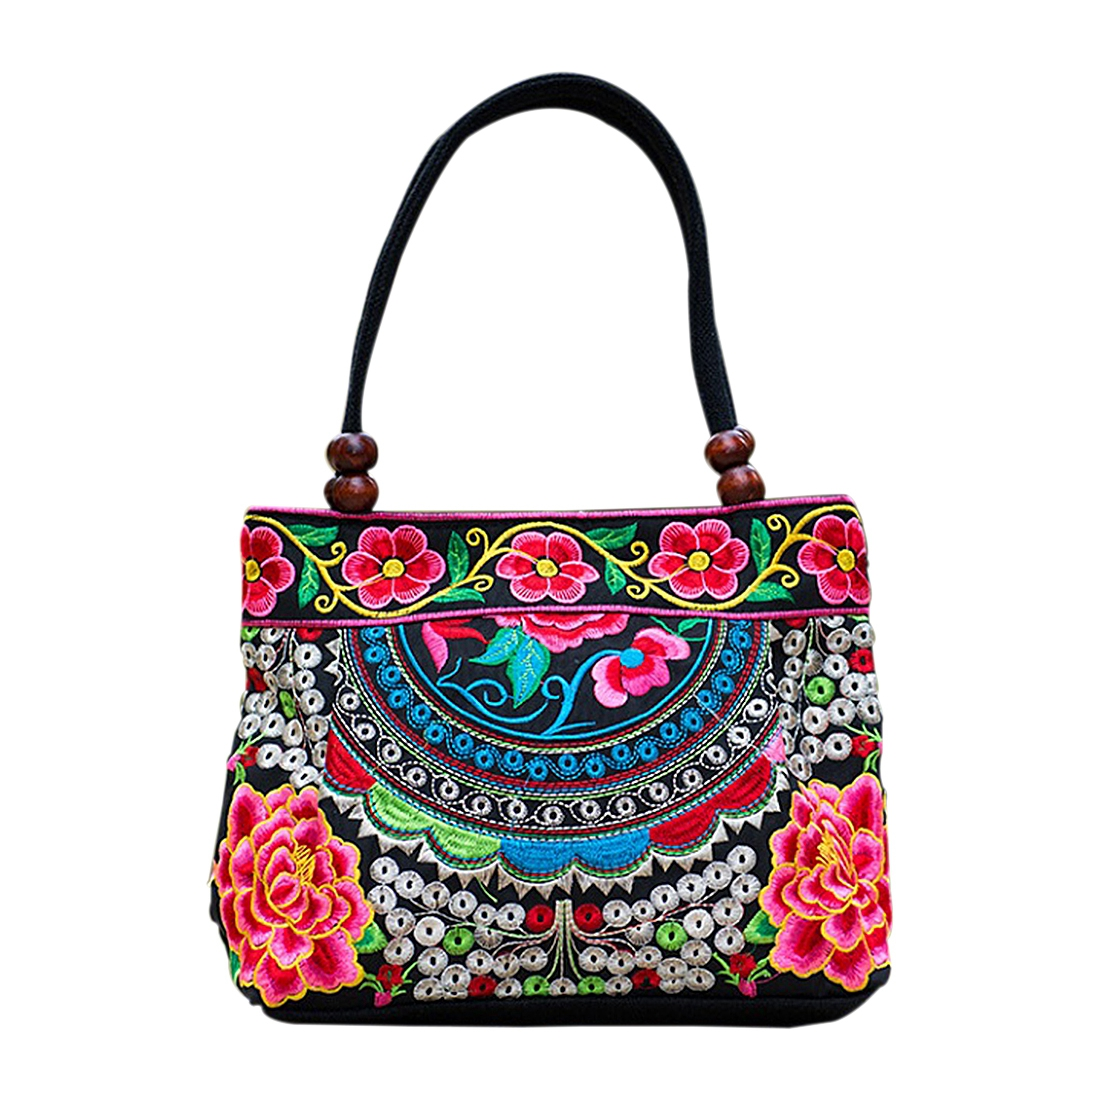 Chinese Style Women Handbag Embroidery Ethnic Summer Fashion Handmade Flowers Ladies Tote Shoulder Bags Cross-body Bags 100 super cute little embroidery chinese embroidery handmade art design book